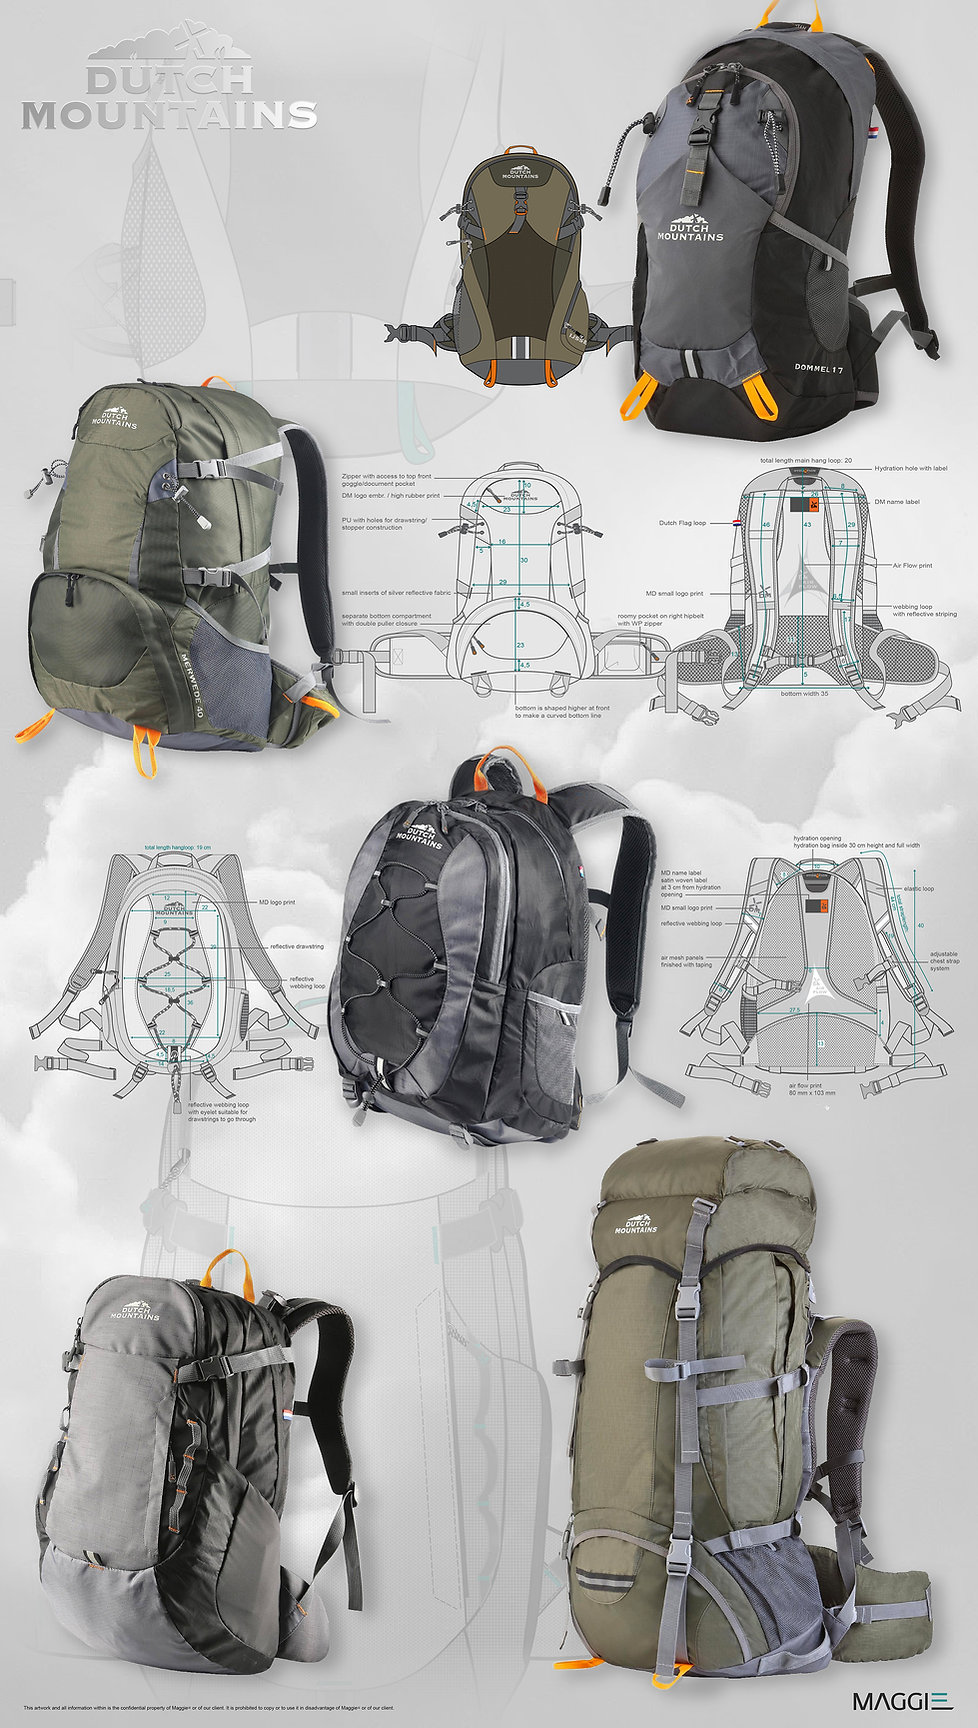 DM_Backpacks-s.jpg